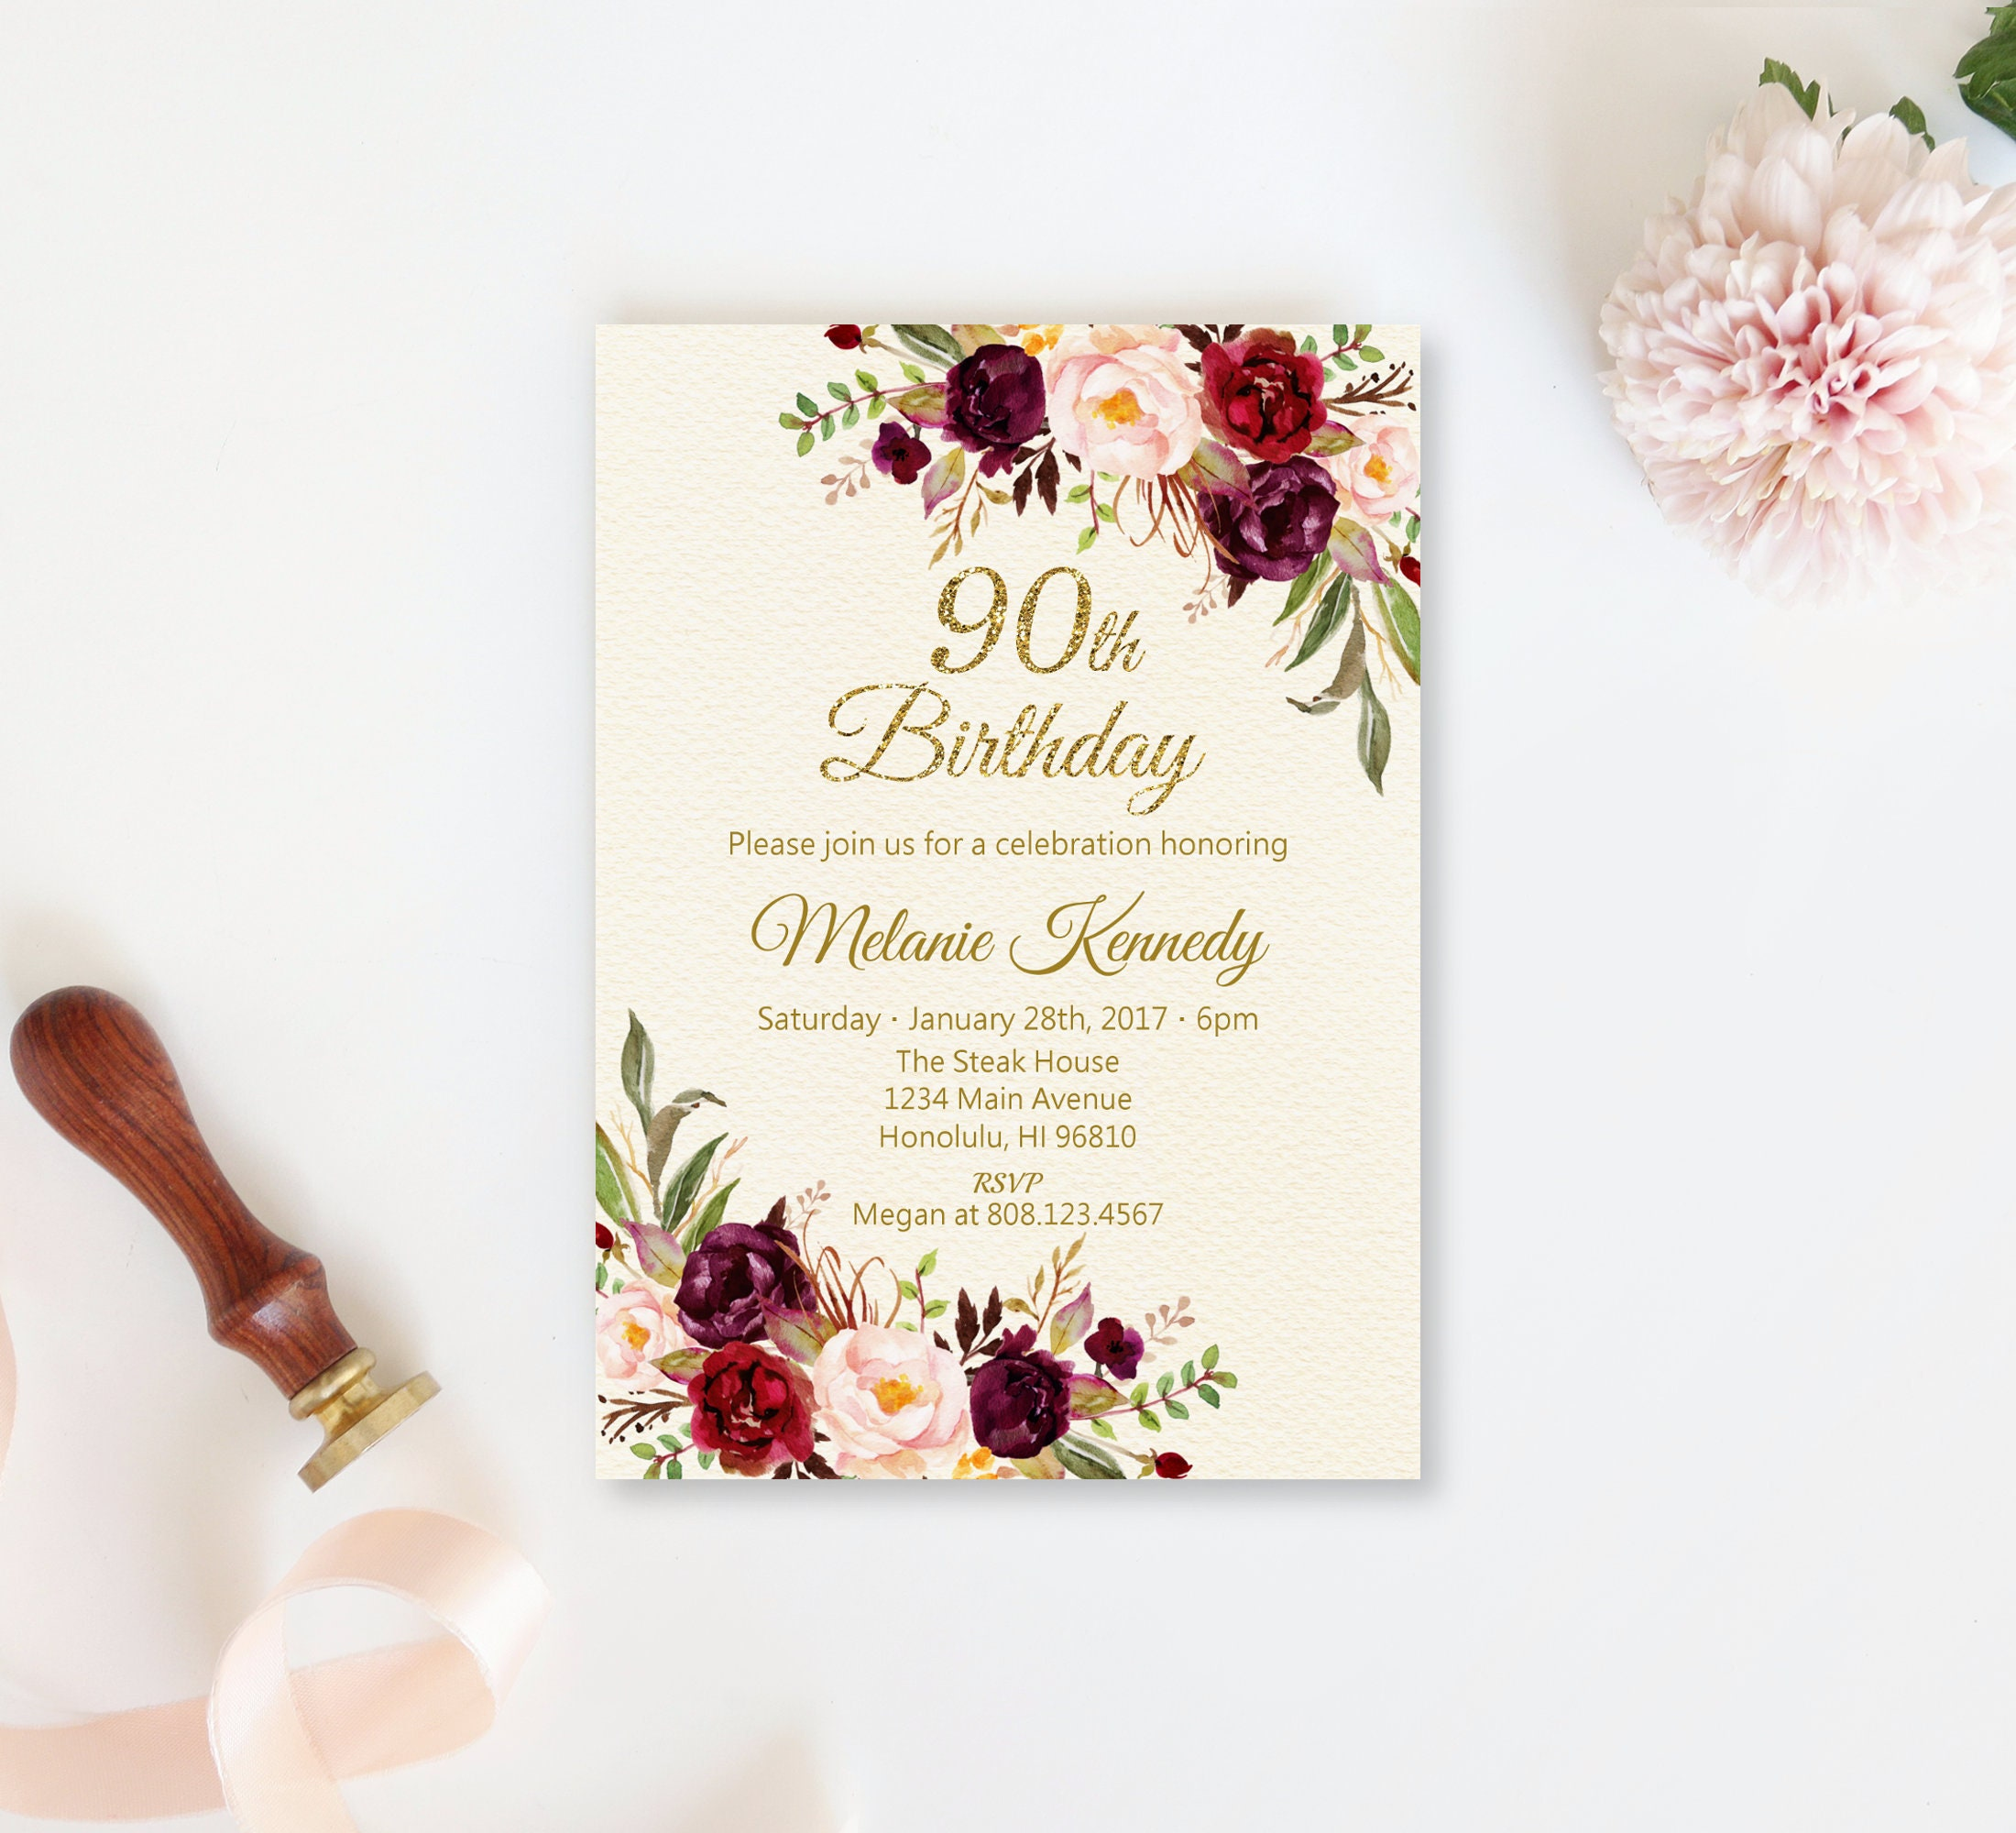 90th Birthday Invitations For Women Burgundy Red Floral Etsy